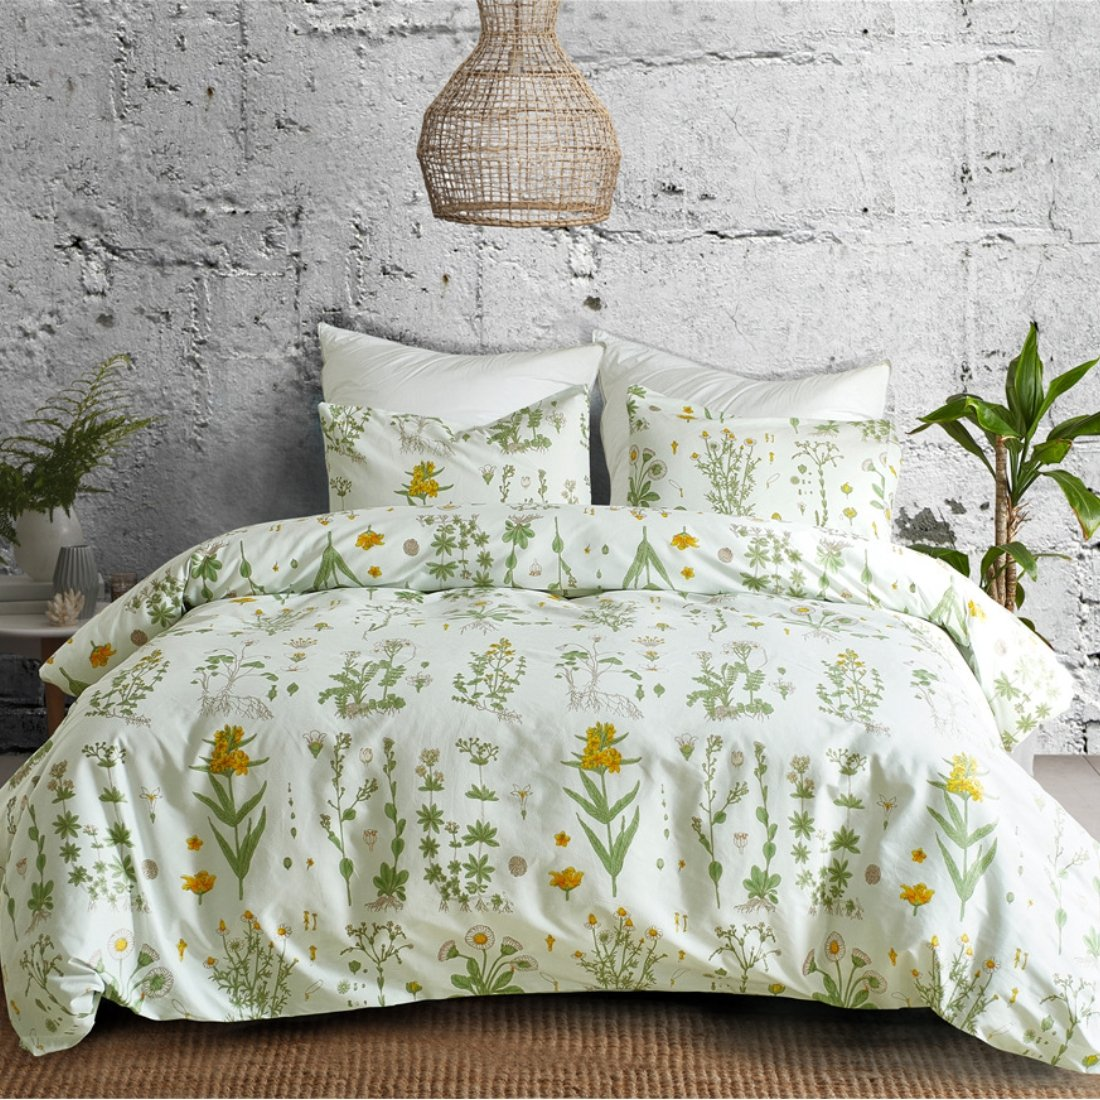 3 PCs Botanical Duvet Cover Set, Modern Flowers Printed Boho Comforter Cover Bedding Sets with Zipper Ties by Smoofy (Image #1)